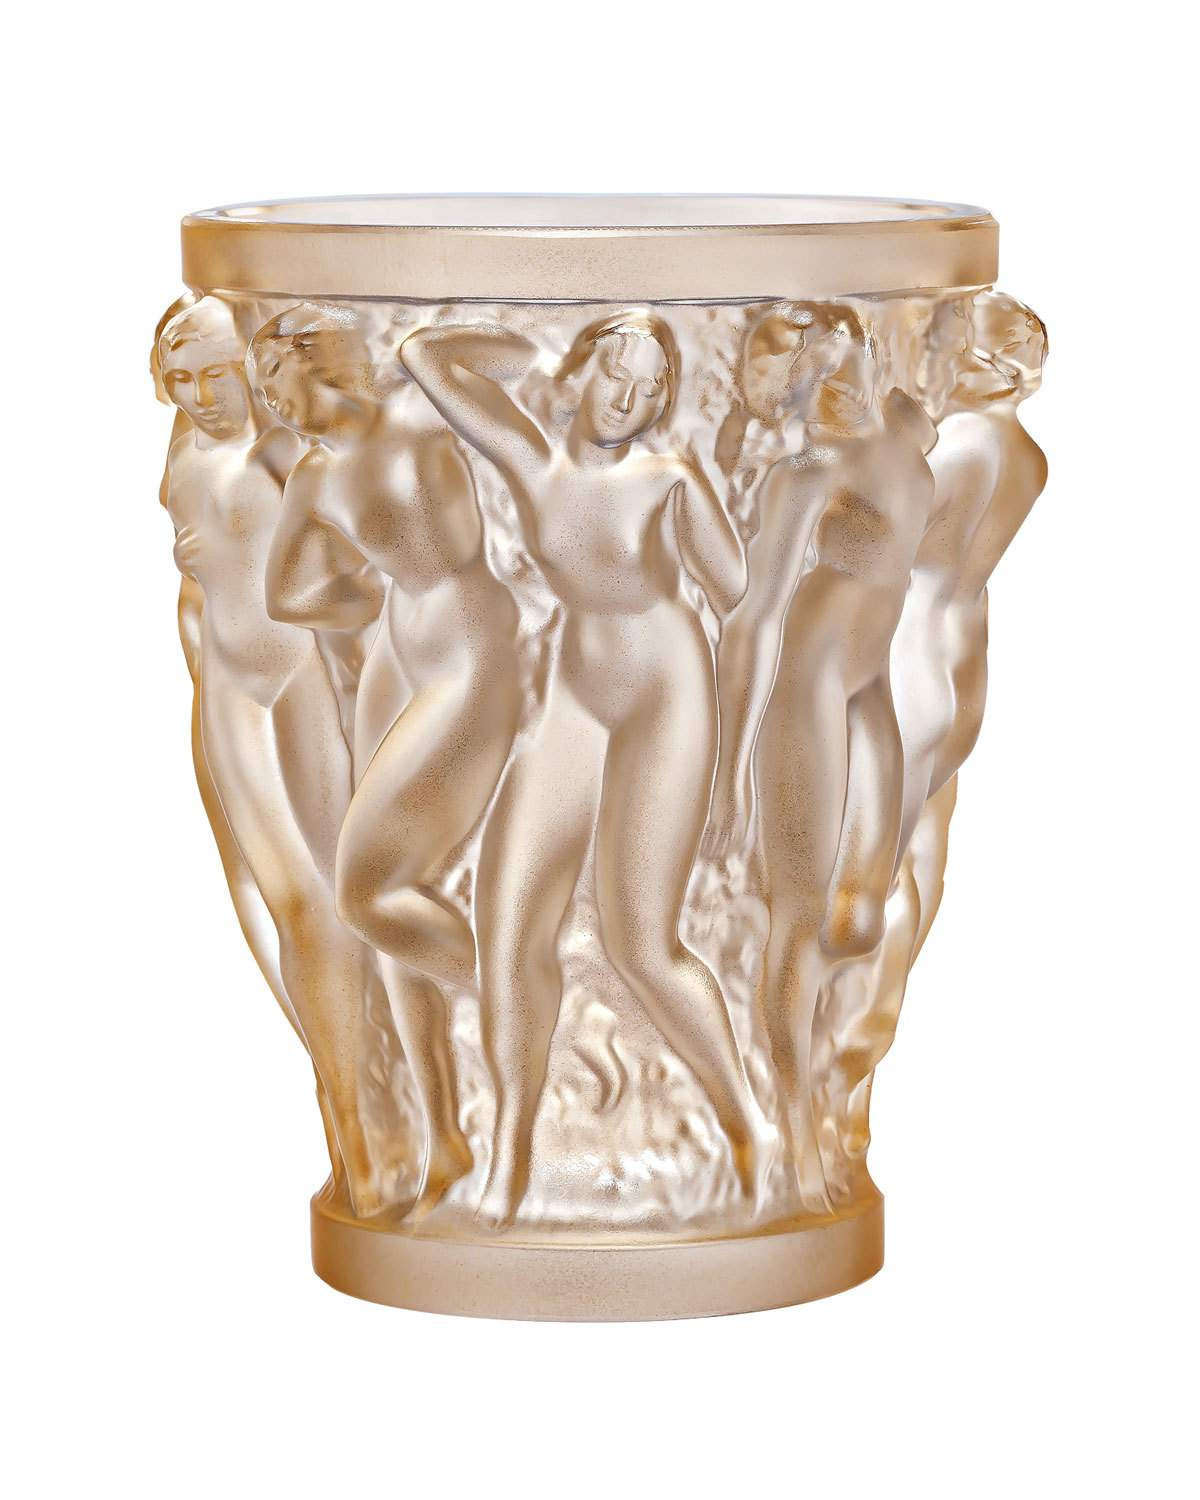 lalique vase with doves of lalique product collection at neiman marcus pertaining to lalique bacchantes small gold luster vase